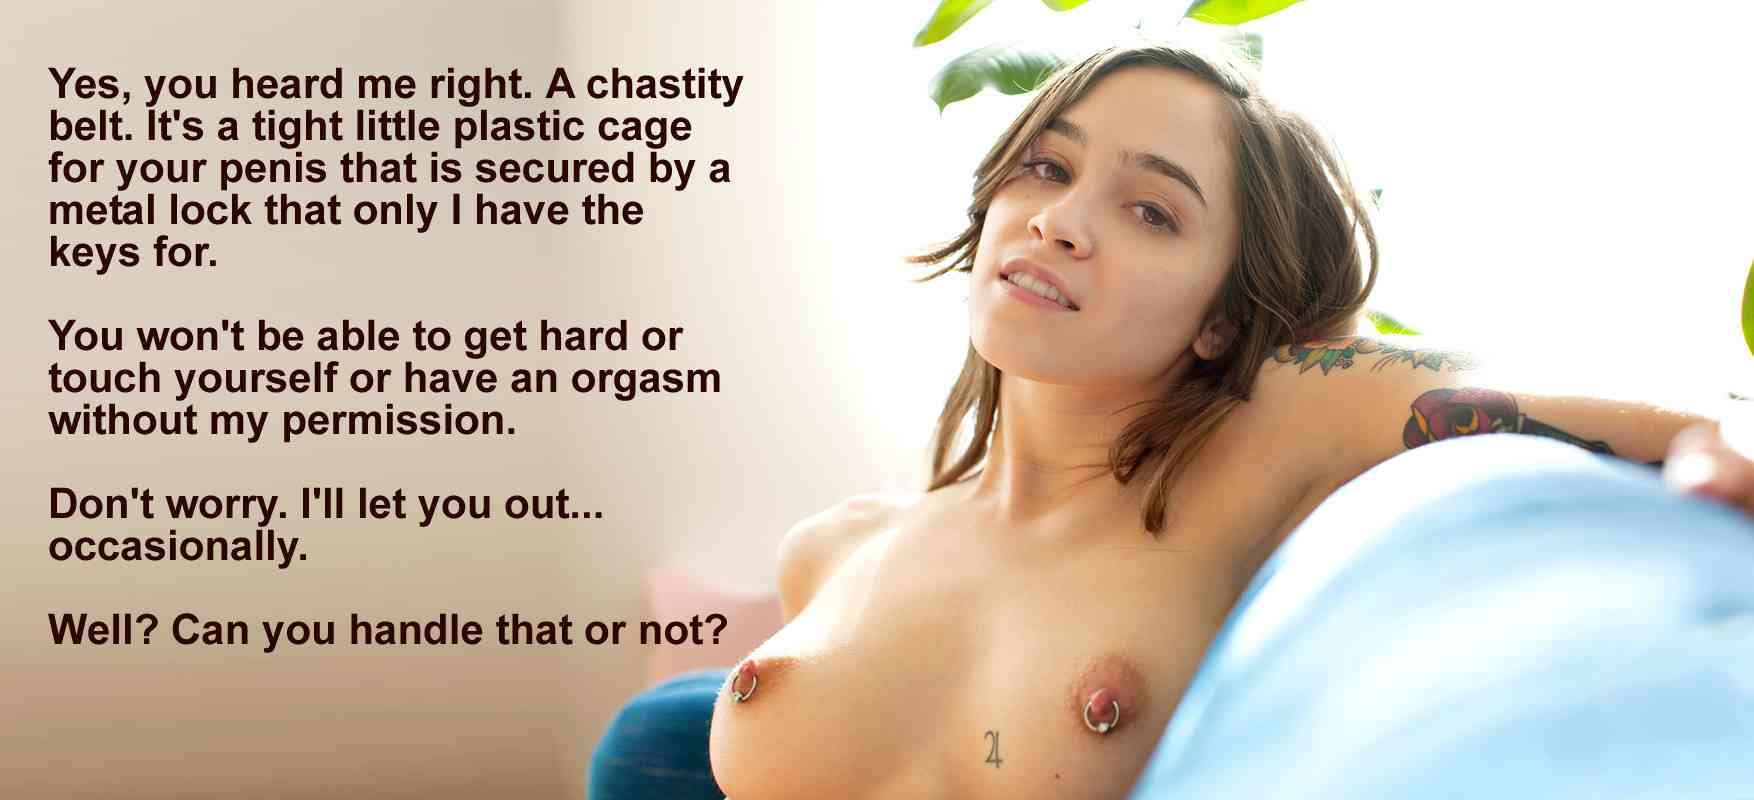 female chastity captions sexpics download erotic and porn images